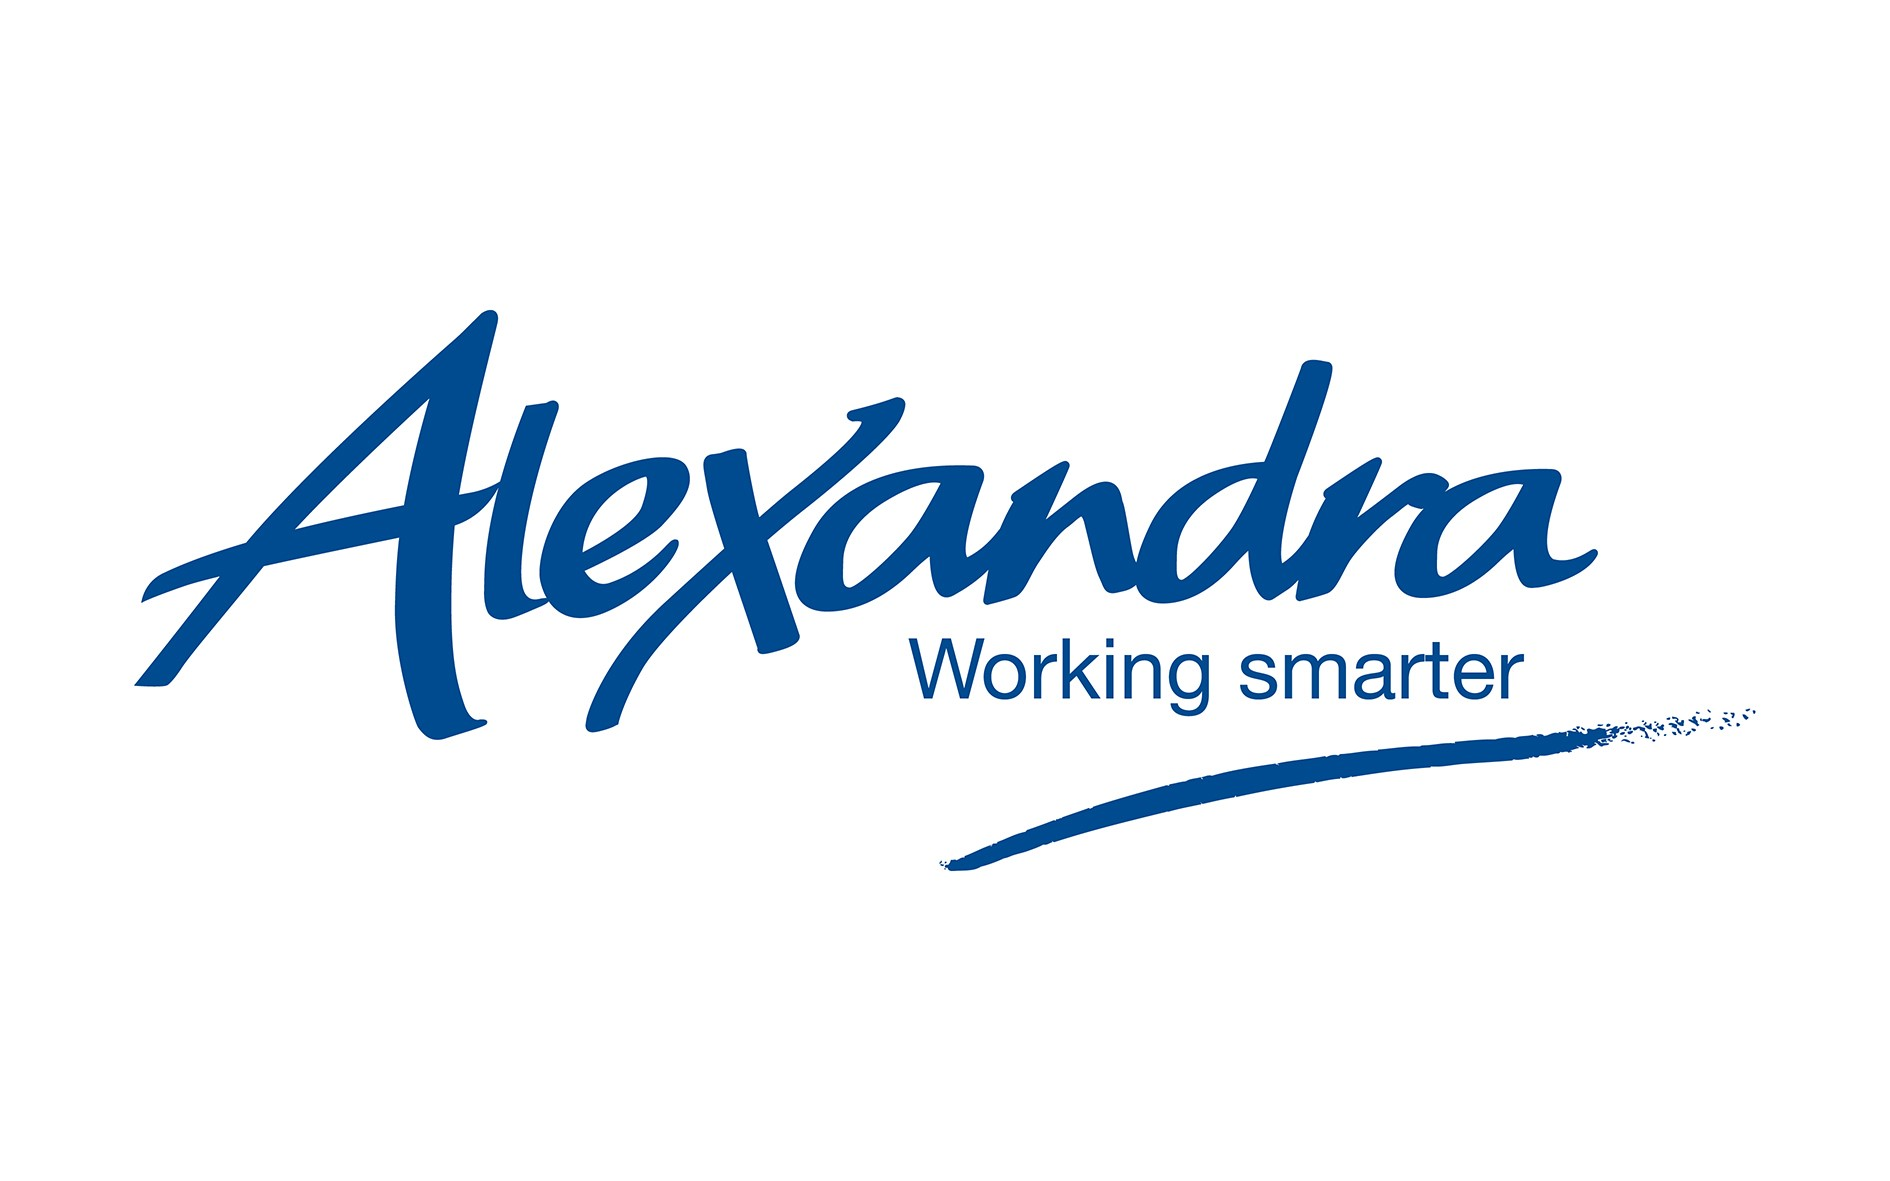 Leading workwear company Alexandra has followed up its work supplying scrubs for the NHS during the pandemic by becoming headline sponsor of this year's RCN Nursing Awards.